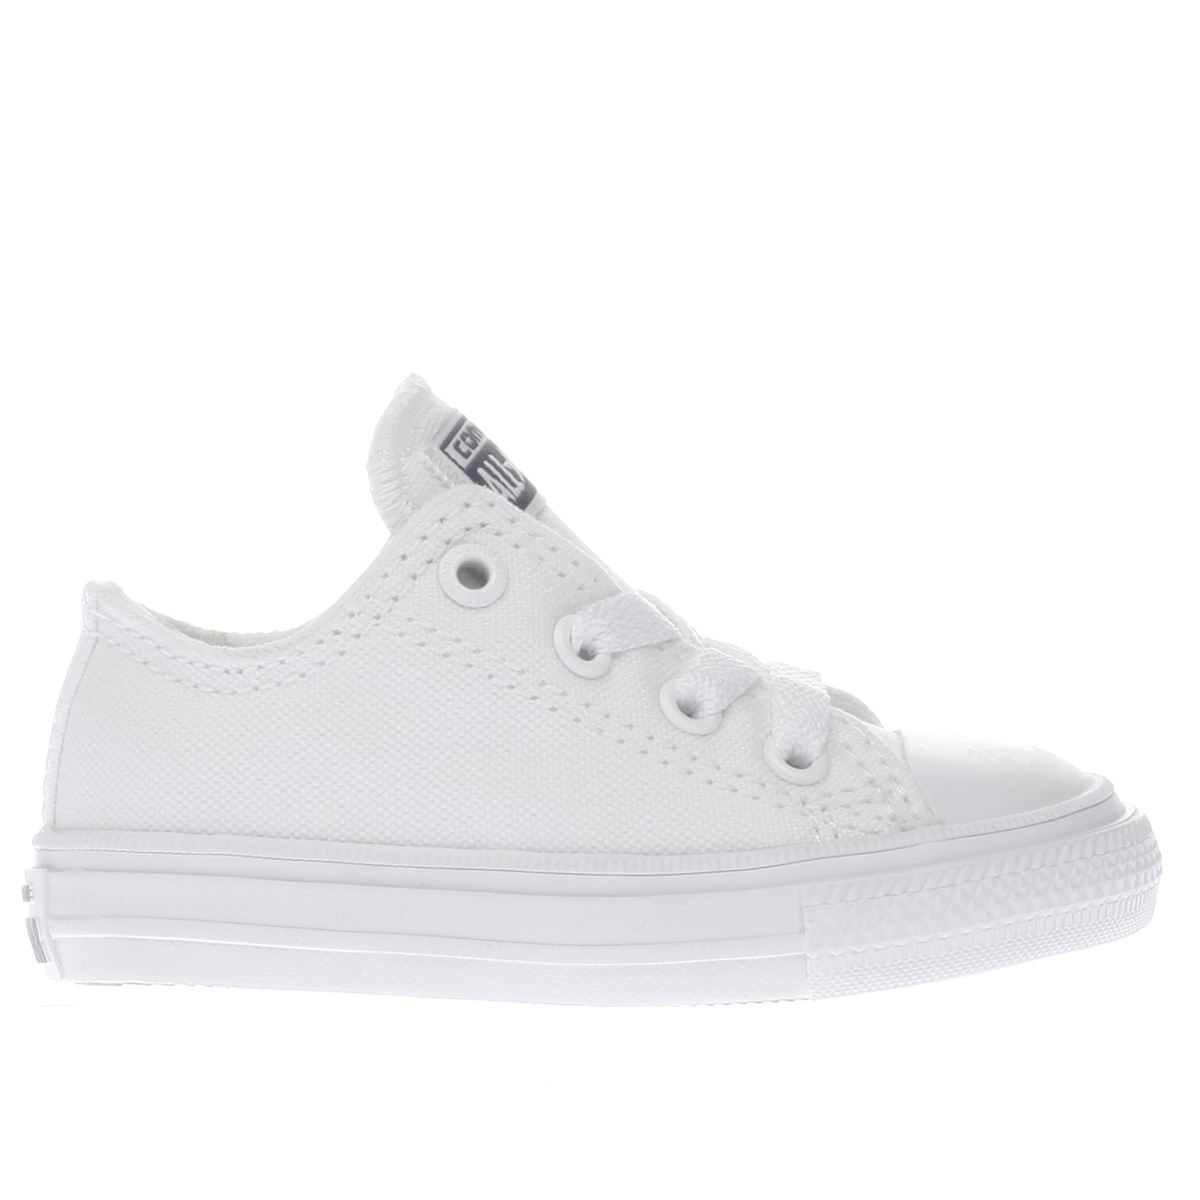 converse white chuck taylor ii ox Toddler Trainers